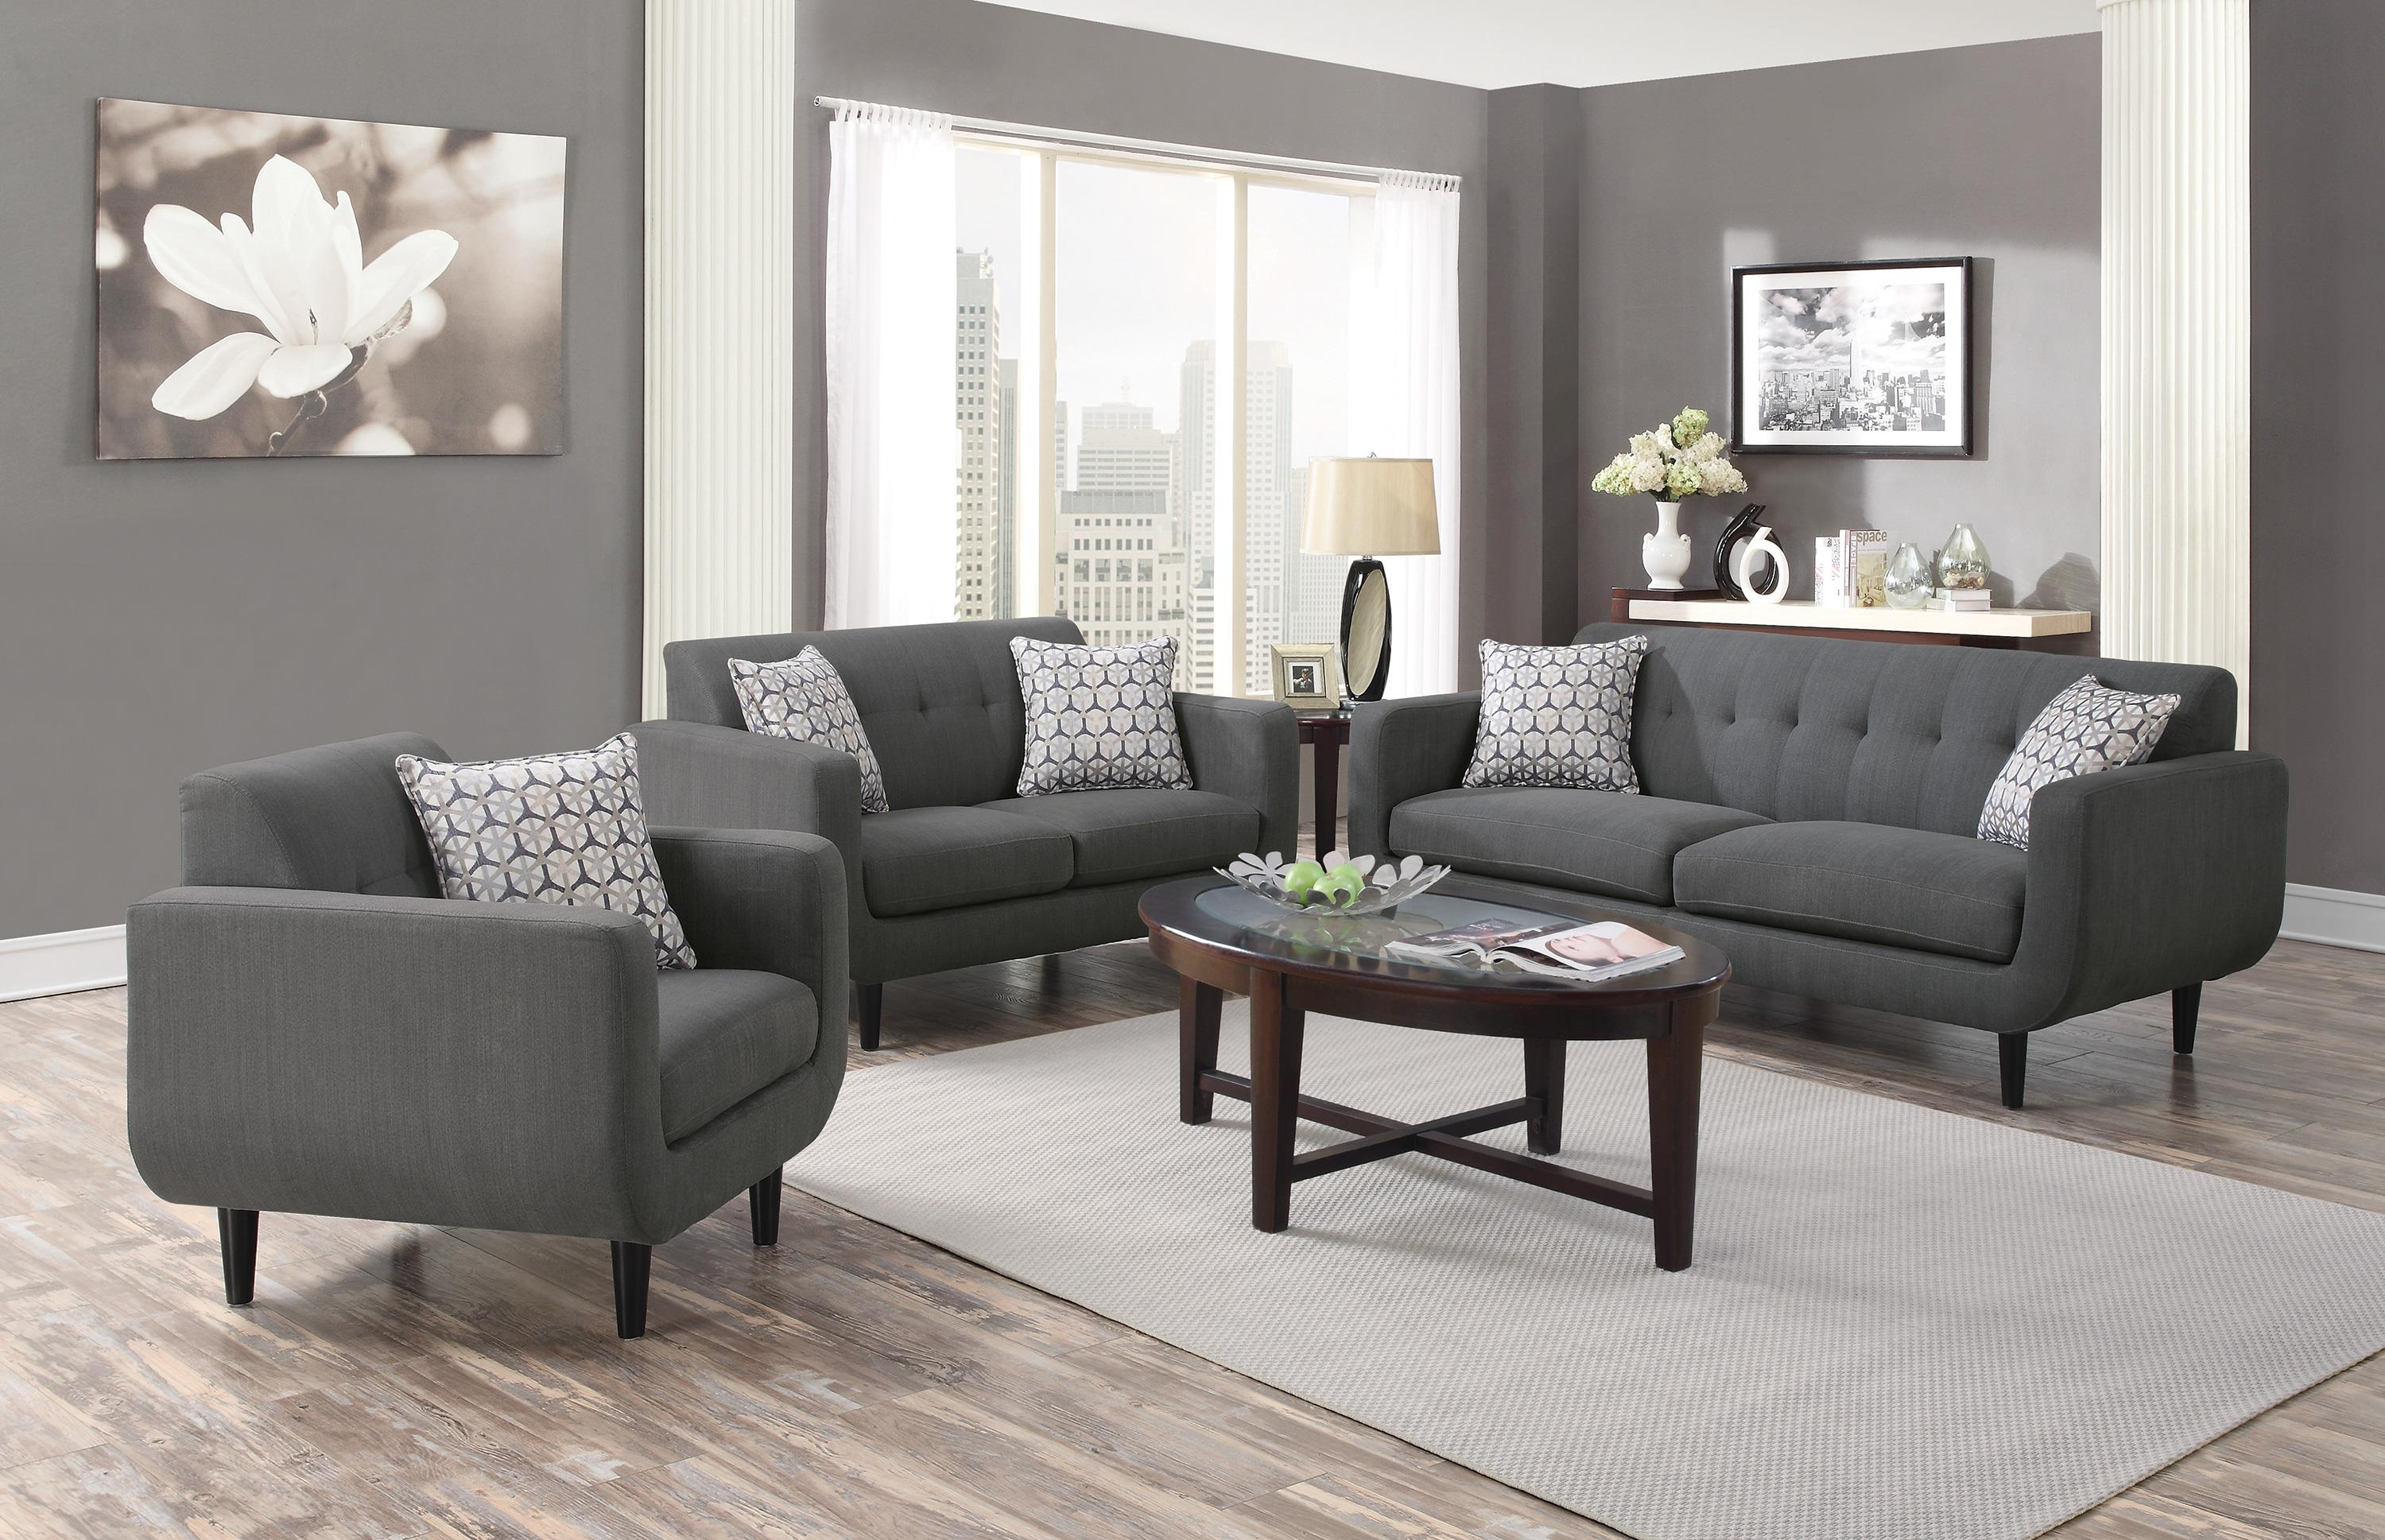 Coaster Stansall 2pc Grey Sofa Loveseat Set Dallas Tx Living Room Set Furniture Nation